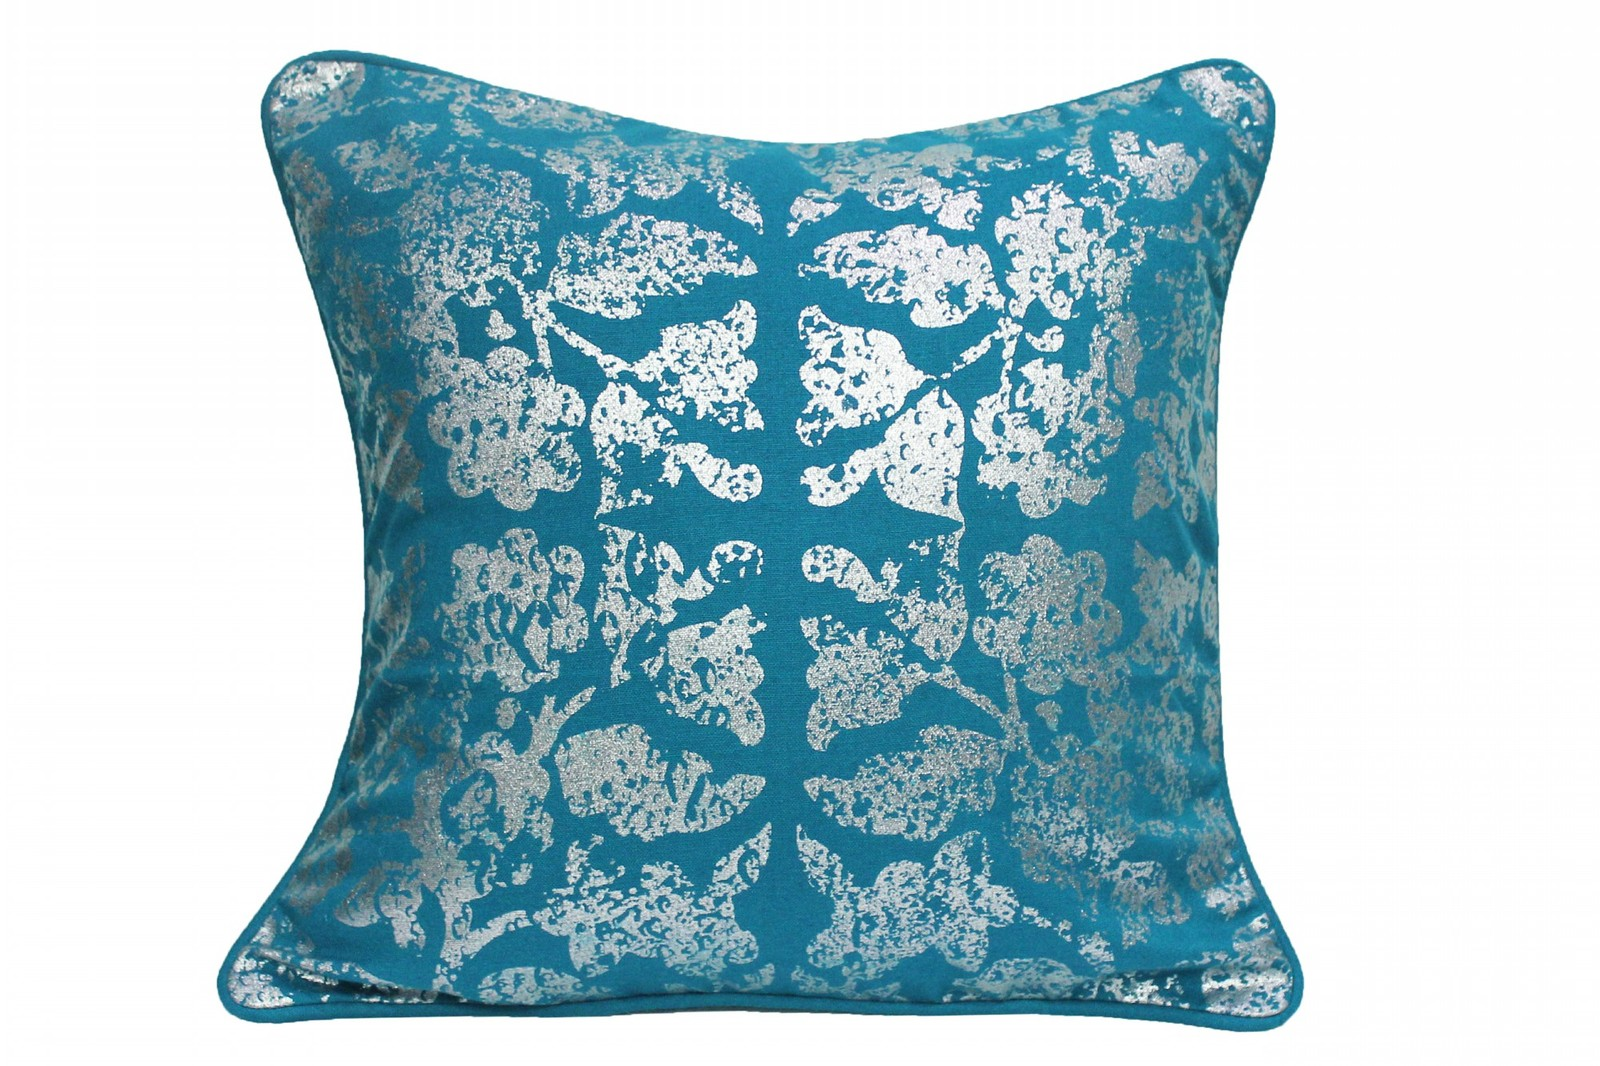 Foil Print Blue Cushion Cover pillow case